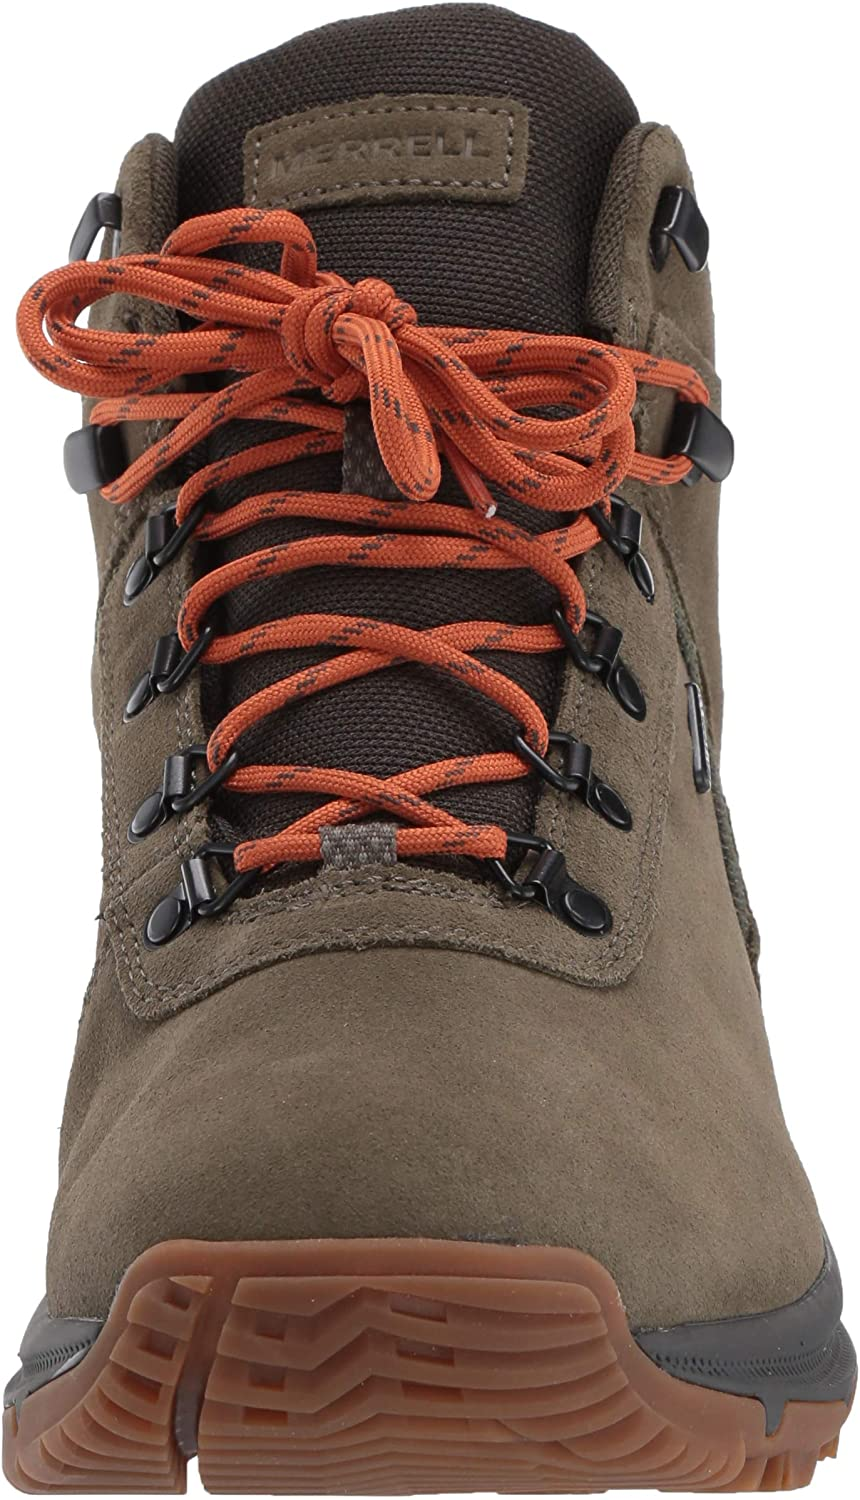 MERRELL - ERIE MID LTR WP TOFFEE - J500121